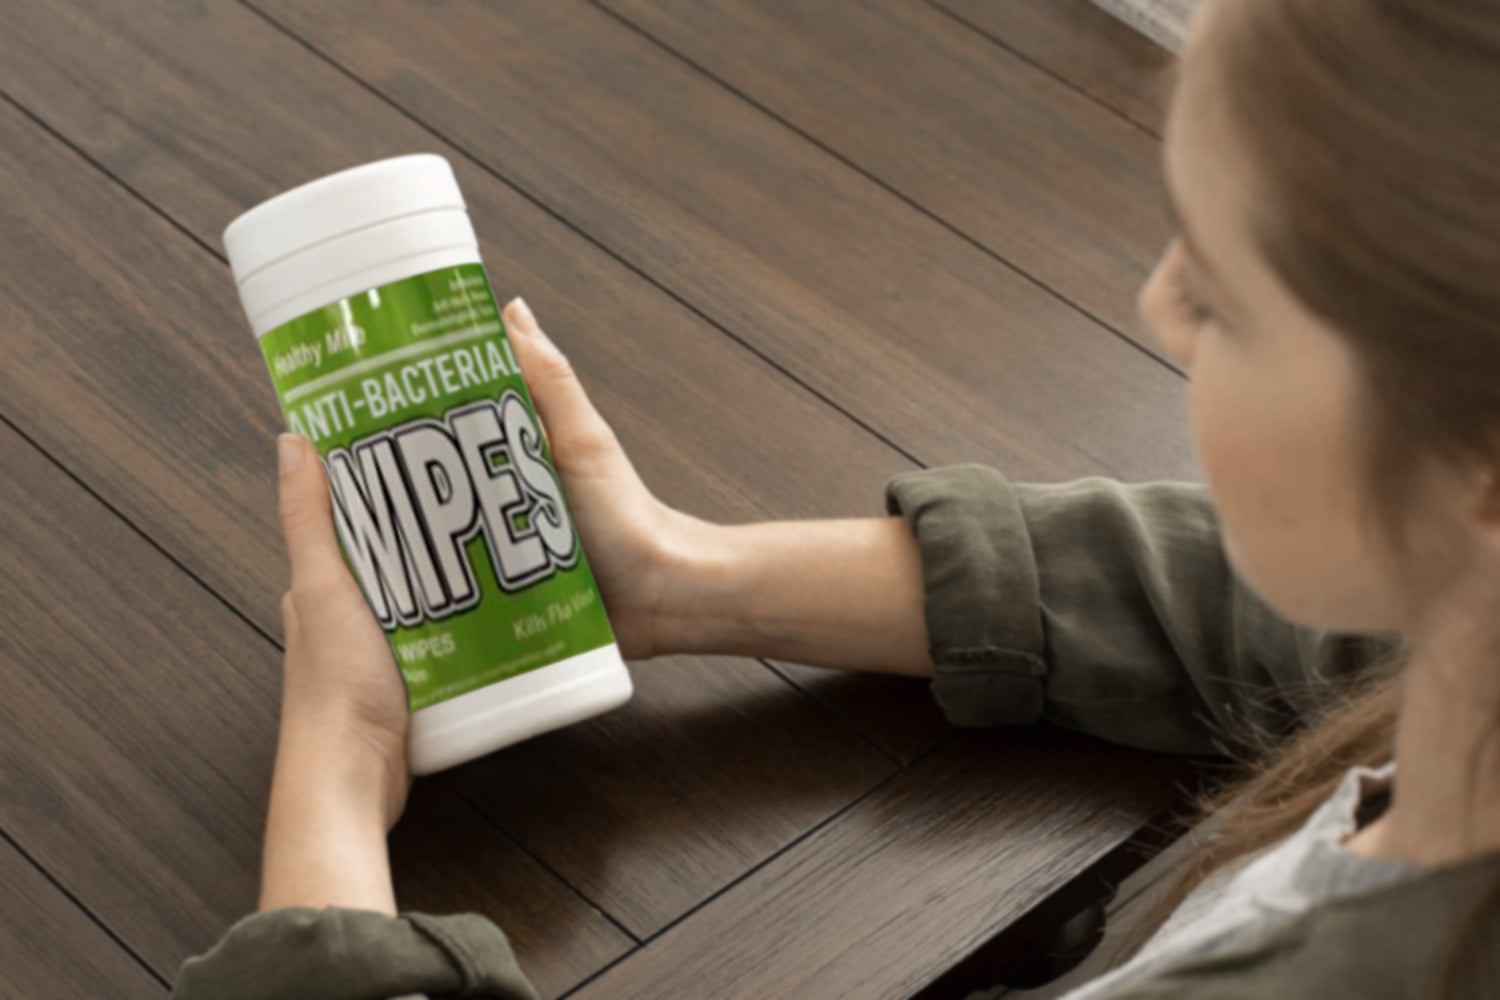 All Purpose Wet Wipes